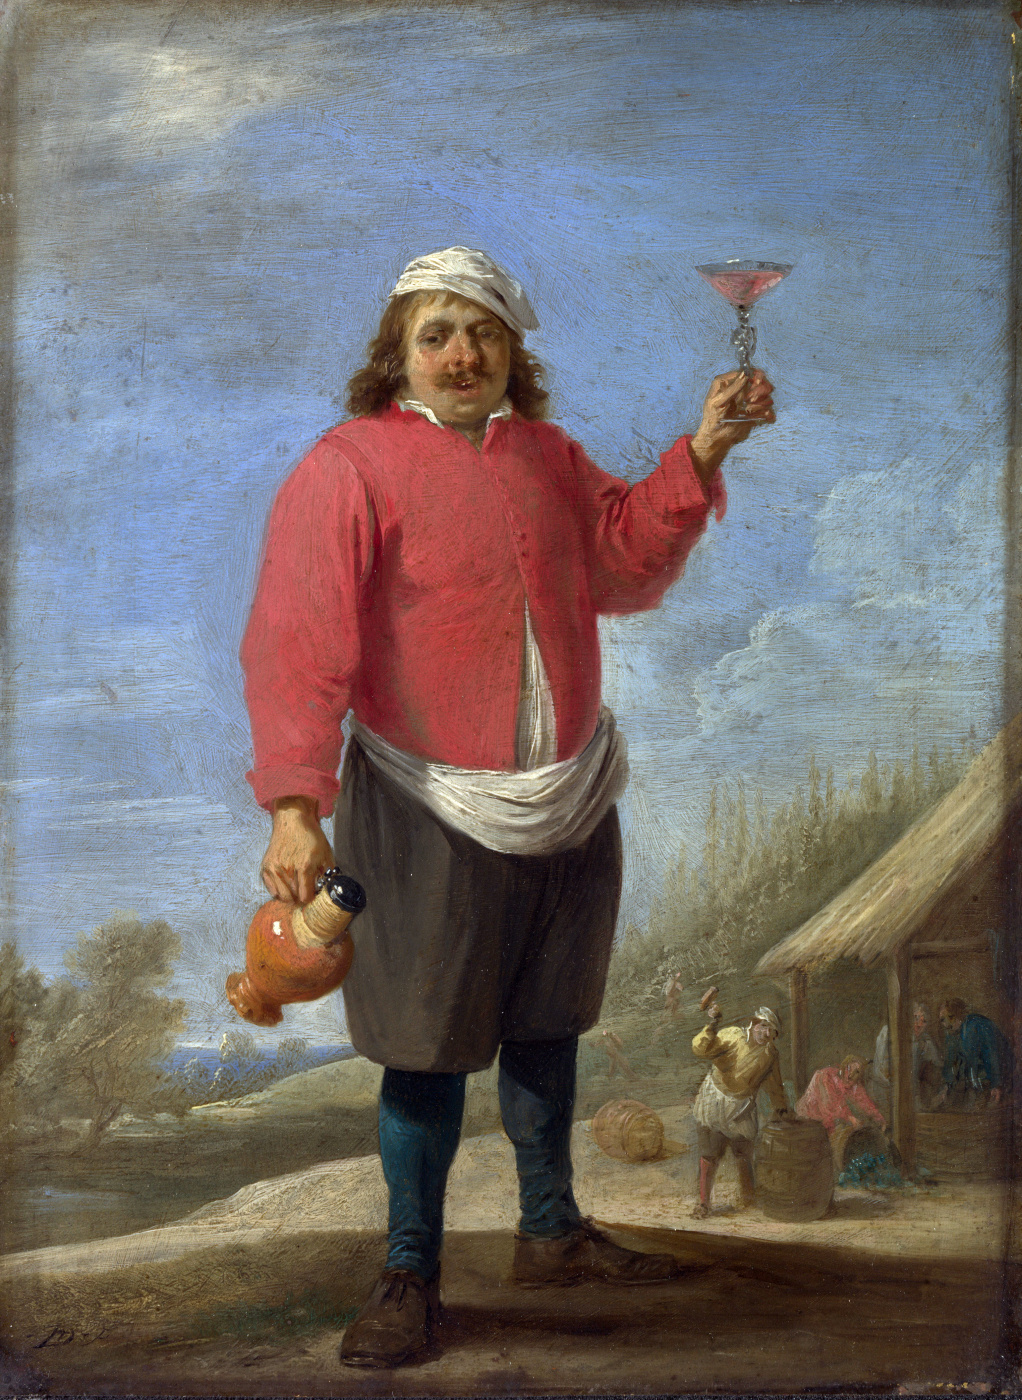 David Teniers the Younger. Autumn